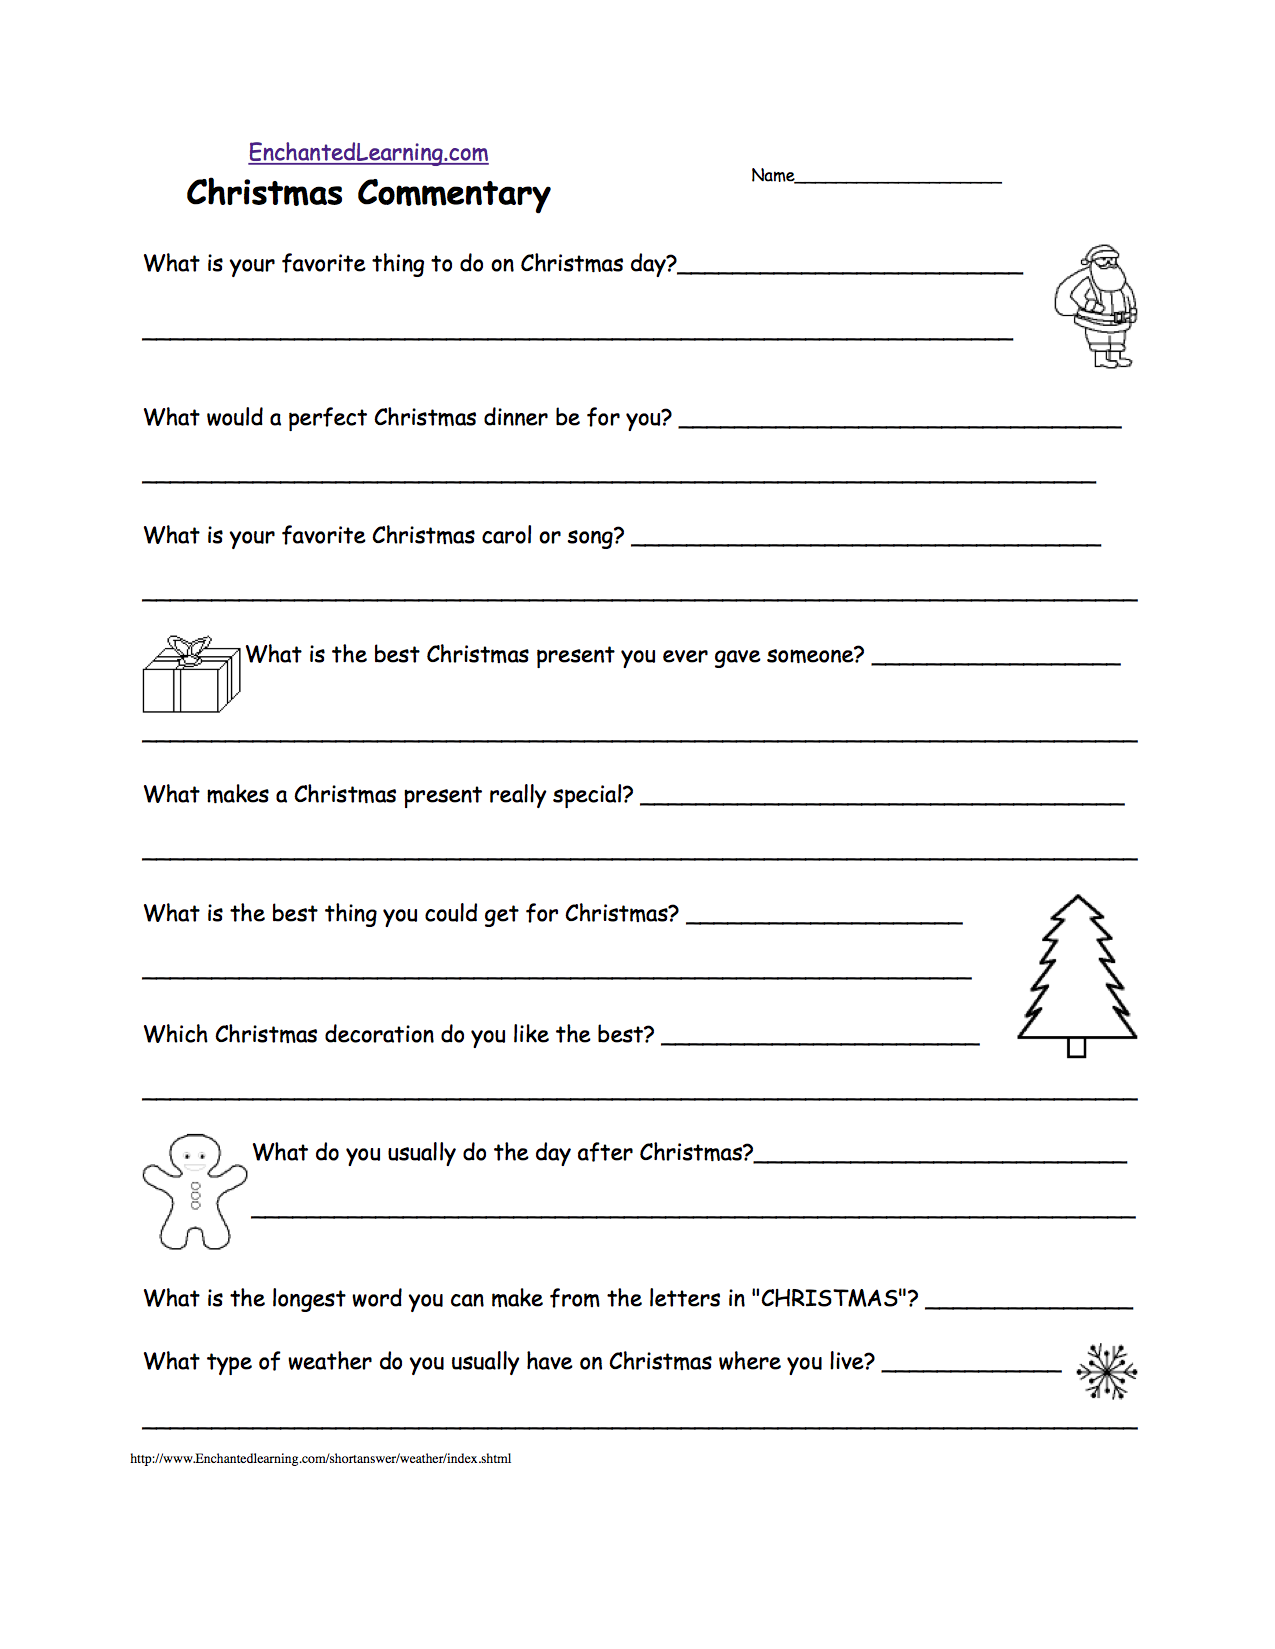 worksheet The Best Christmas Pageant Ever Worksheets how much help should parent give second grader with homework images about christmas on pinterest trees winter worksheets free printables education com or go to